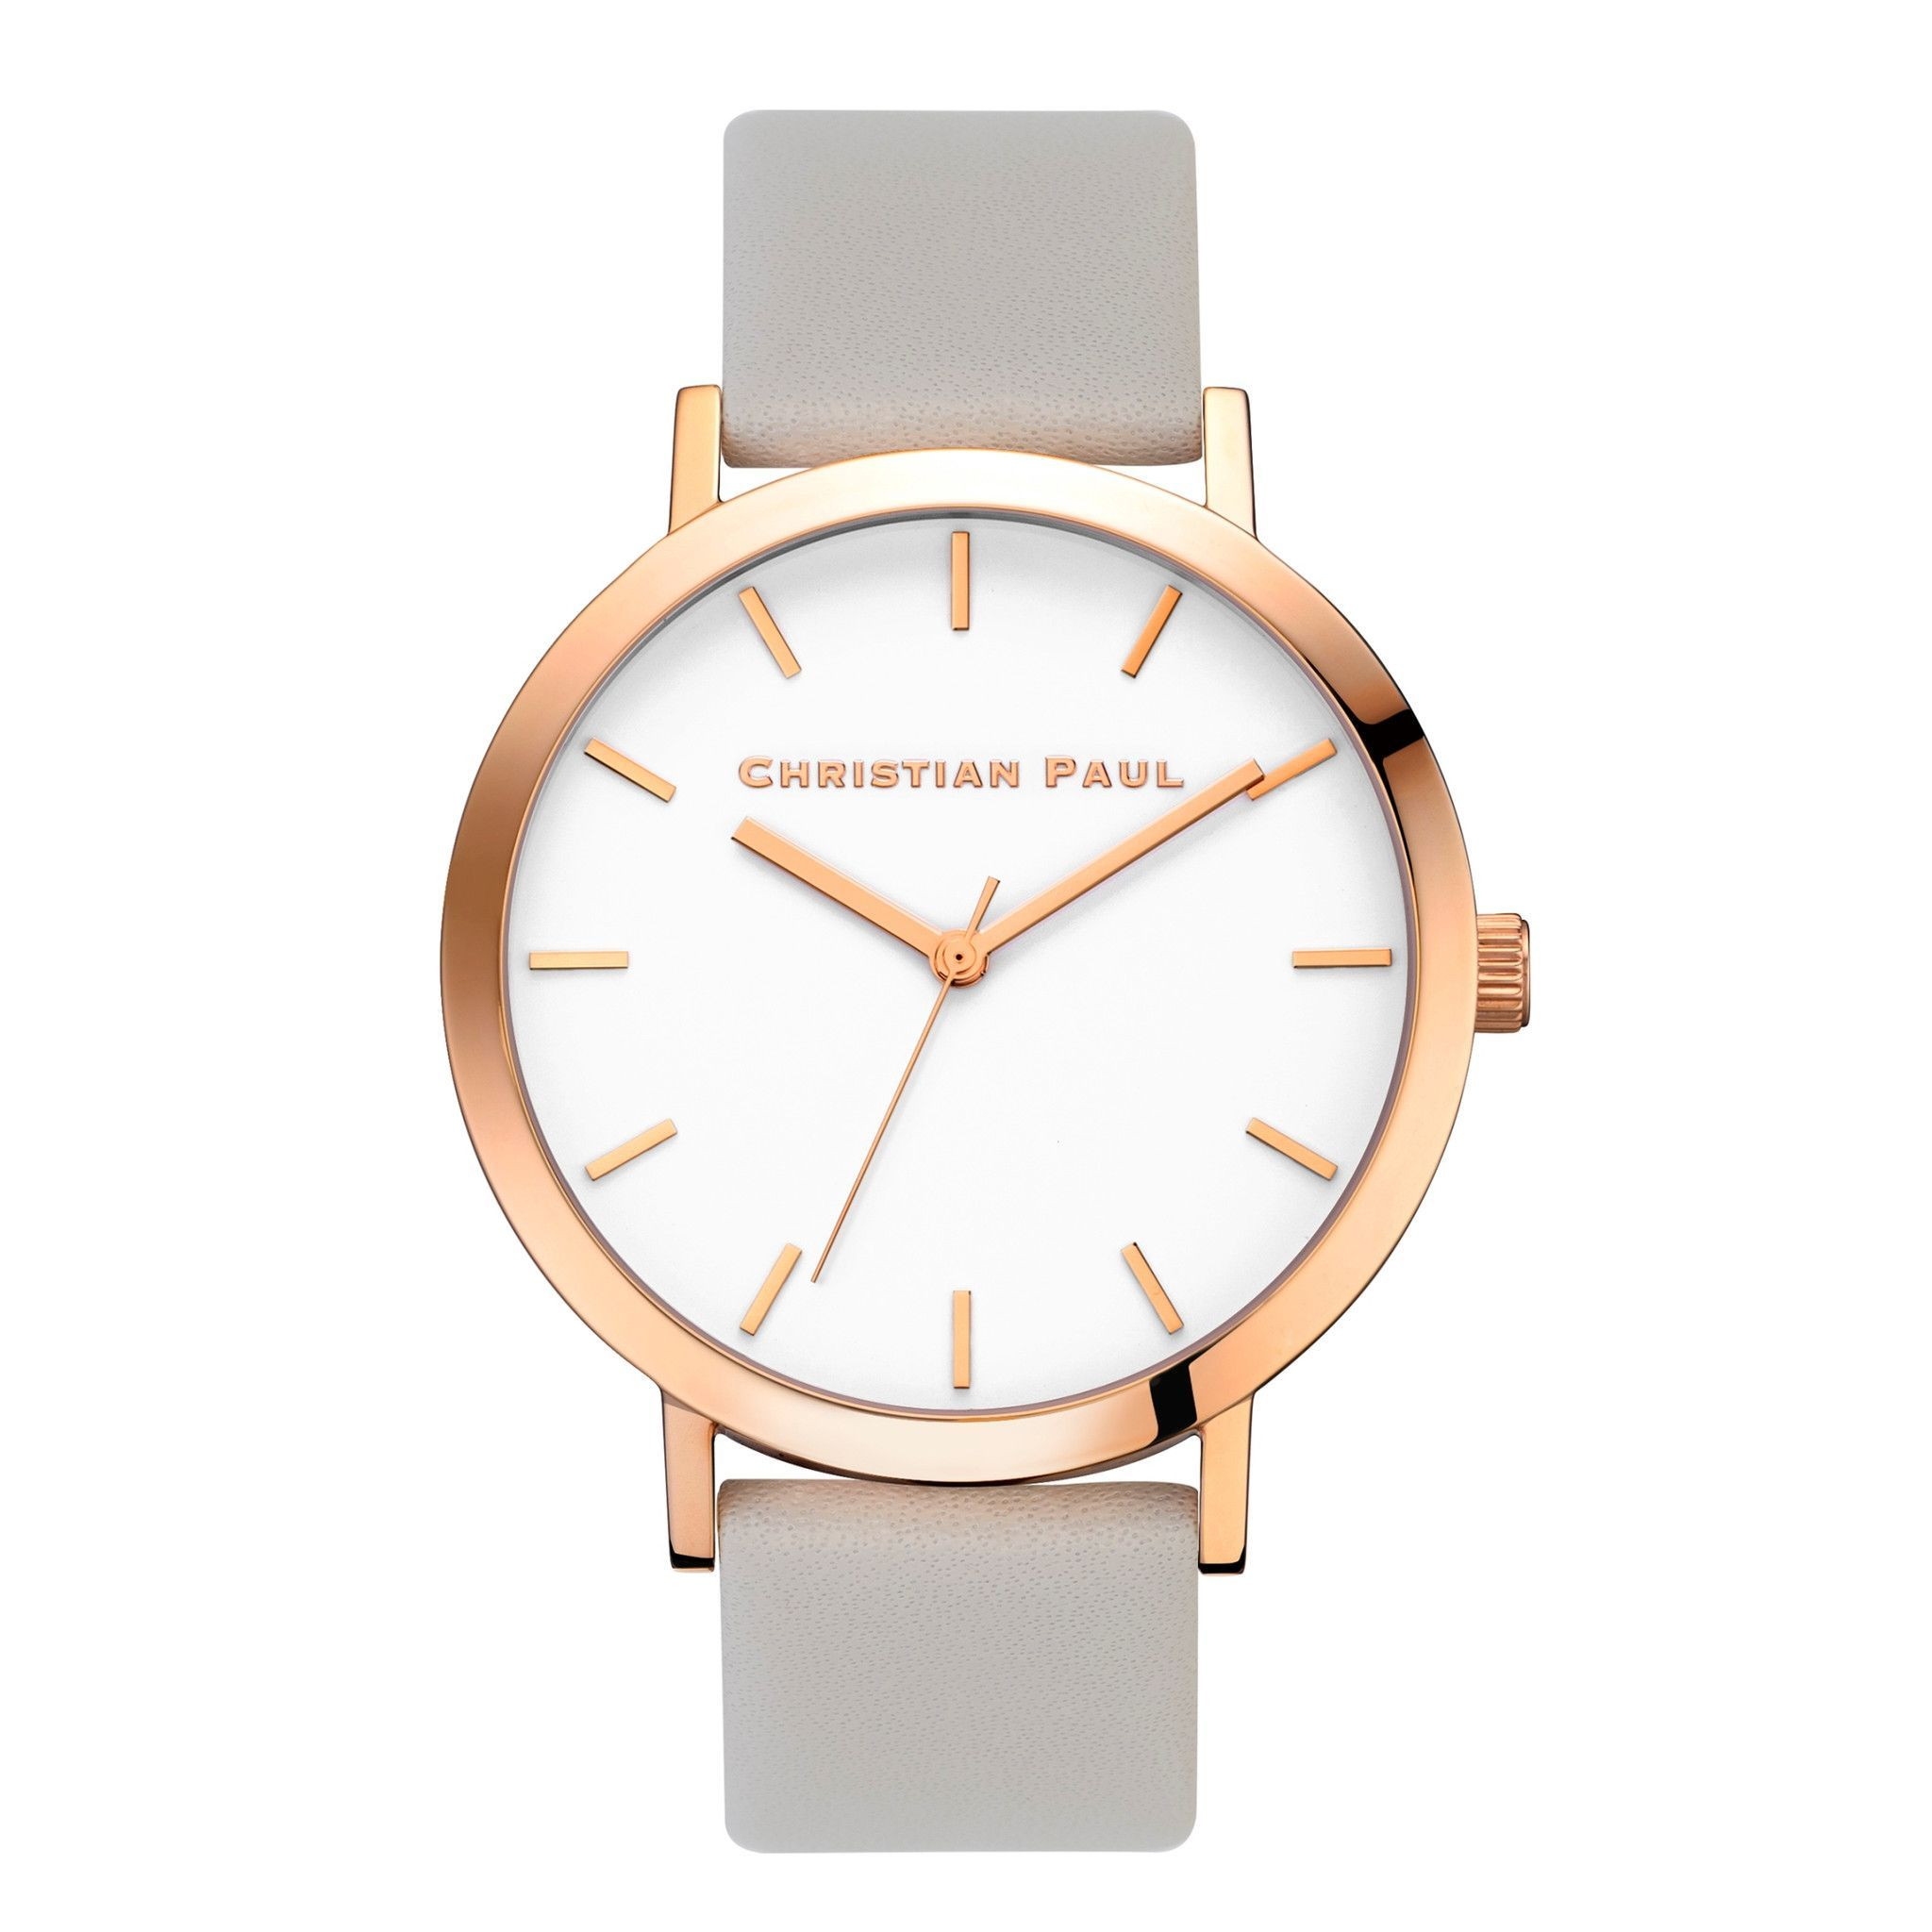 just in of is leather a many could peach and pin s our free you rose women one worldwide styles watches your the style shipping with up collection watch gold